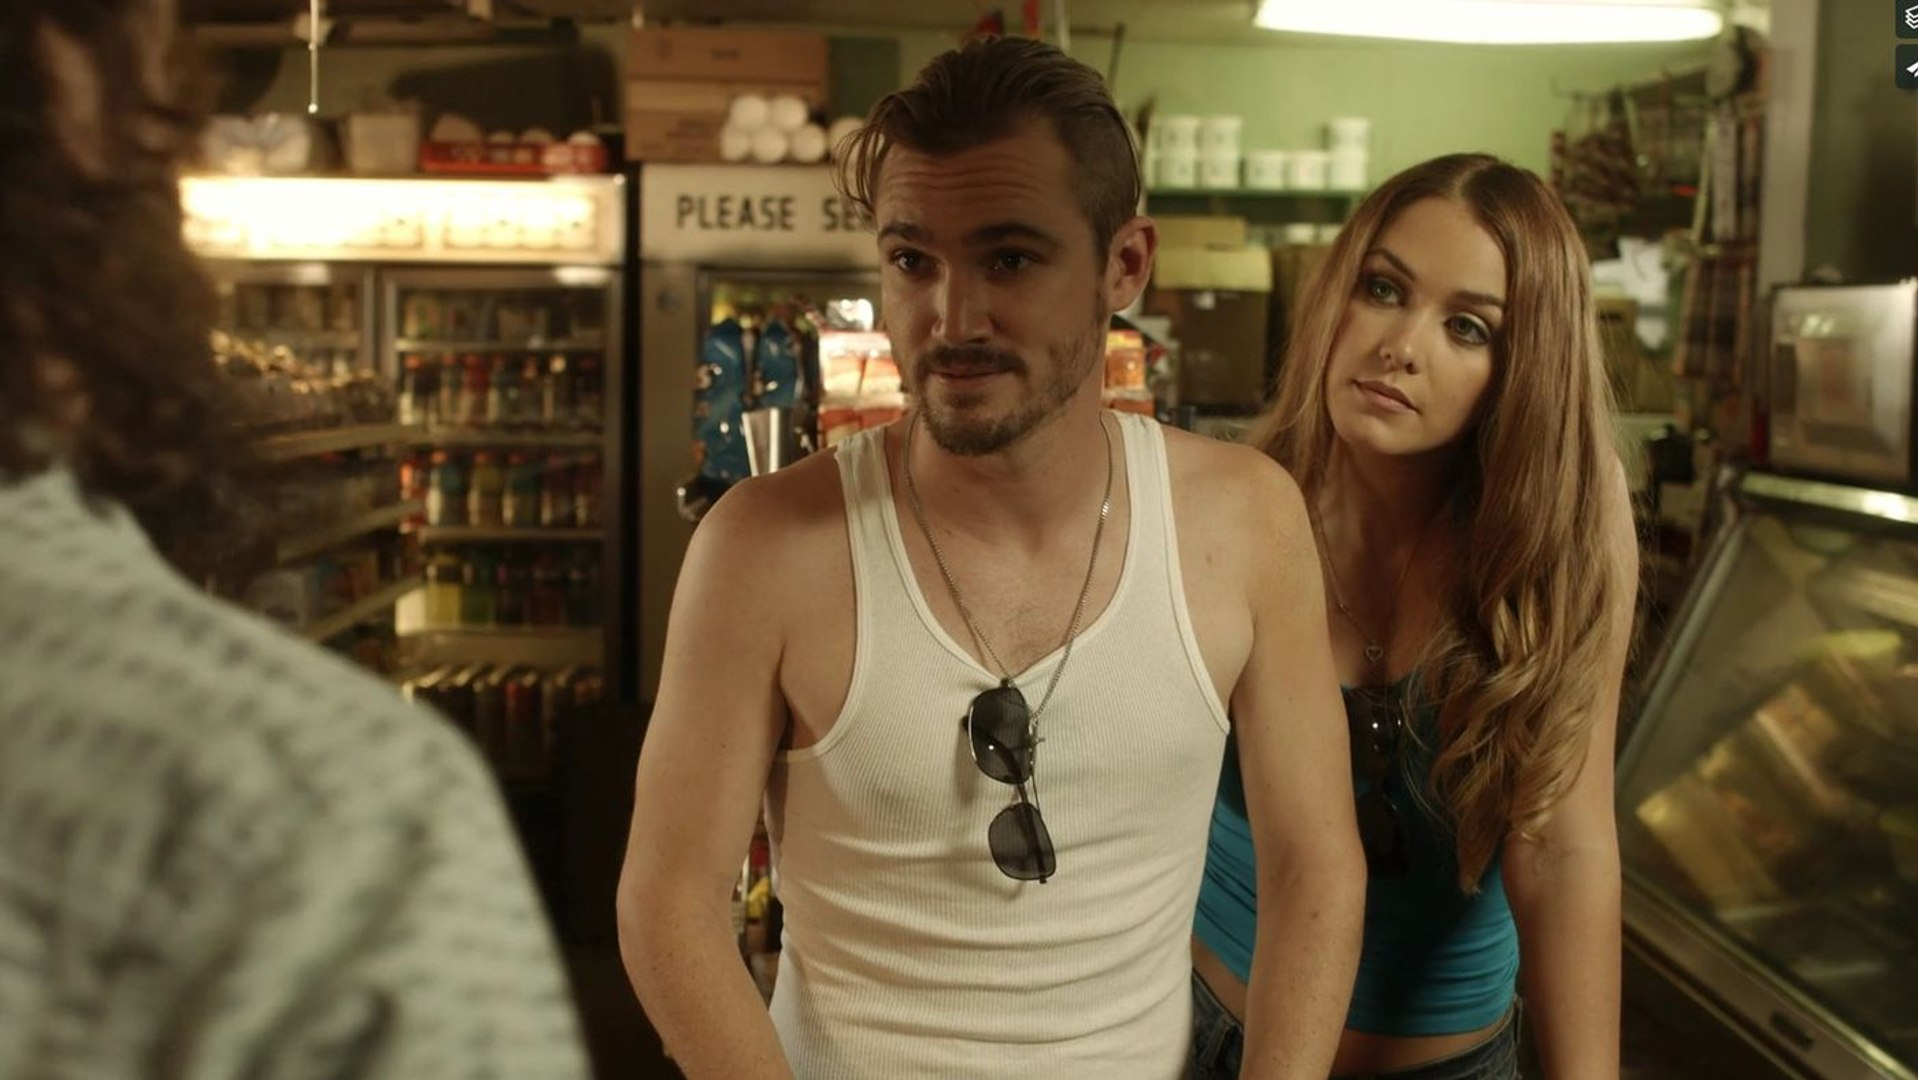 WATCH The Lucky Man FULL MOVIE Online